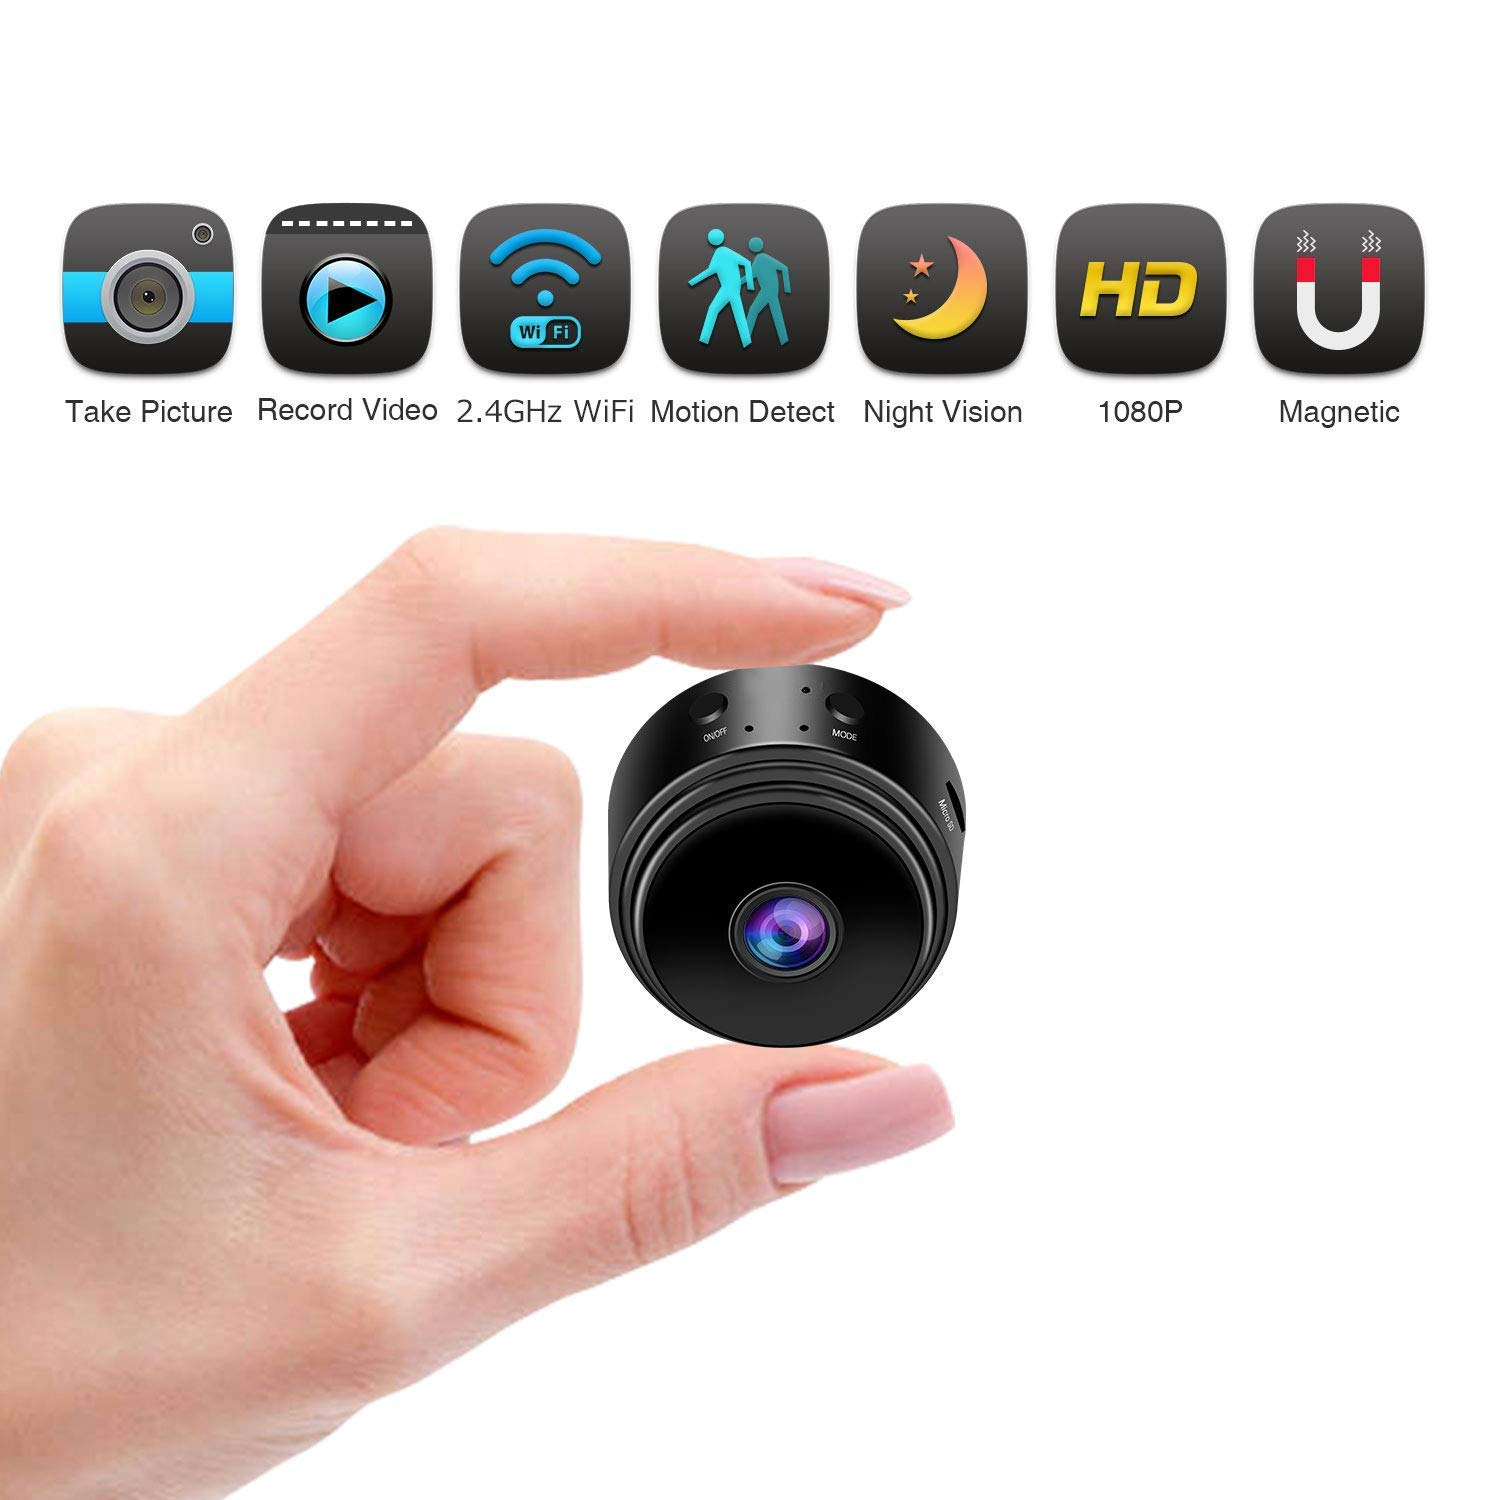 fomei Hidden Camera Spy Camera WiFi Wireless Full HD 1080P Security Camera Night Vision Motion Activated Indoor Outdoor Small Nanny Cam for Cars Home Apartment